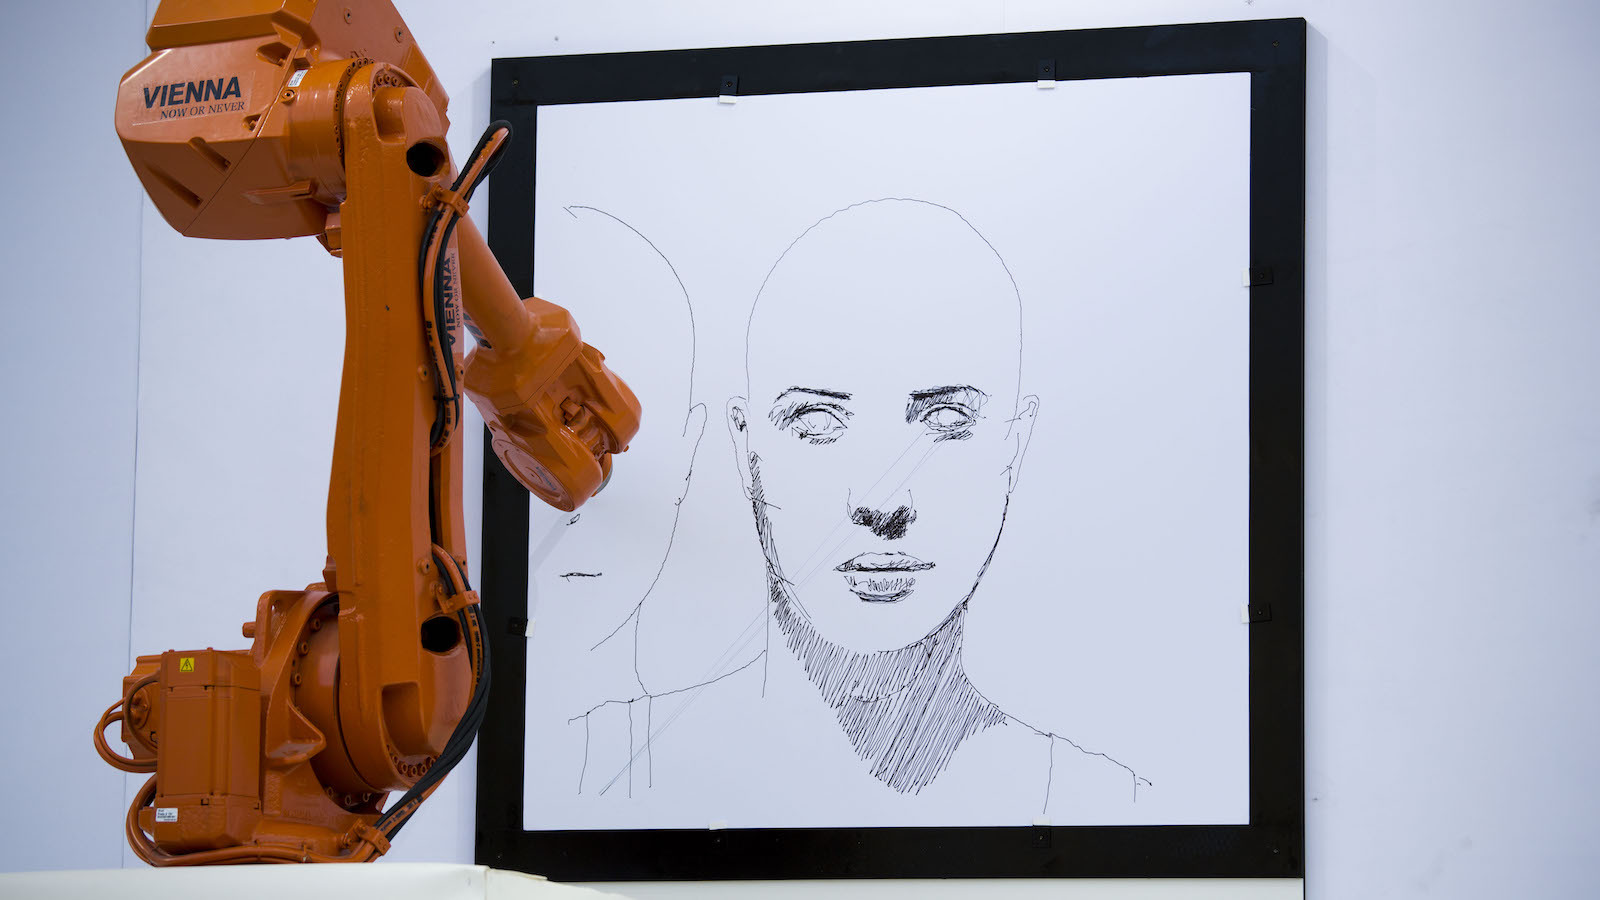 """A robot arm in Trafalgar Square, London, replicates  a drawing being created by Austrian artist Alex Kiessling  from Vienna, with another robot arm  simultaneously  replicating the work in Berlin, Thursday, Sept. 26, 2013.  The project has been given the title """"Long Distance Art"""" and utilizes the IRB 4600 robotic arms, produced by the company ABB for industrial manufacturing in areas such as automotive, plastics, metal fabrication and electronics.  (AP Photo/Matt Dunham)"""